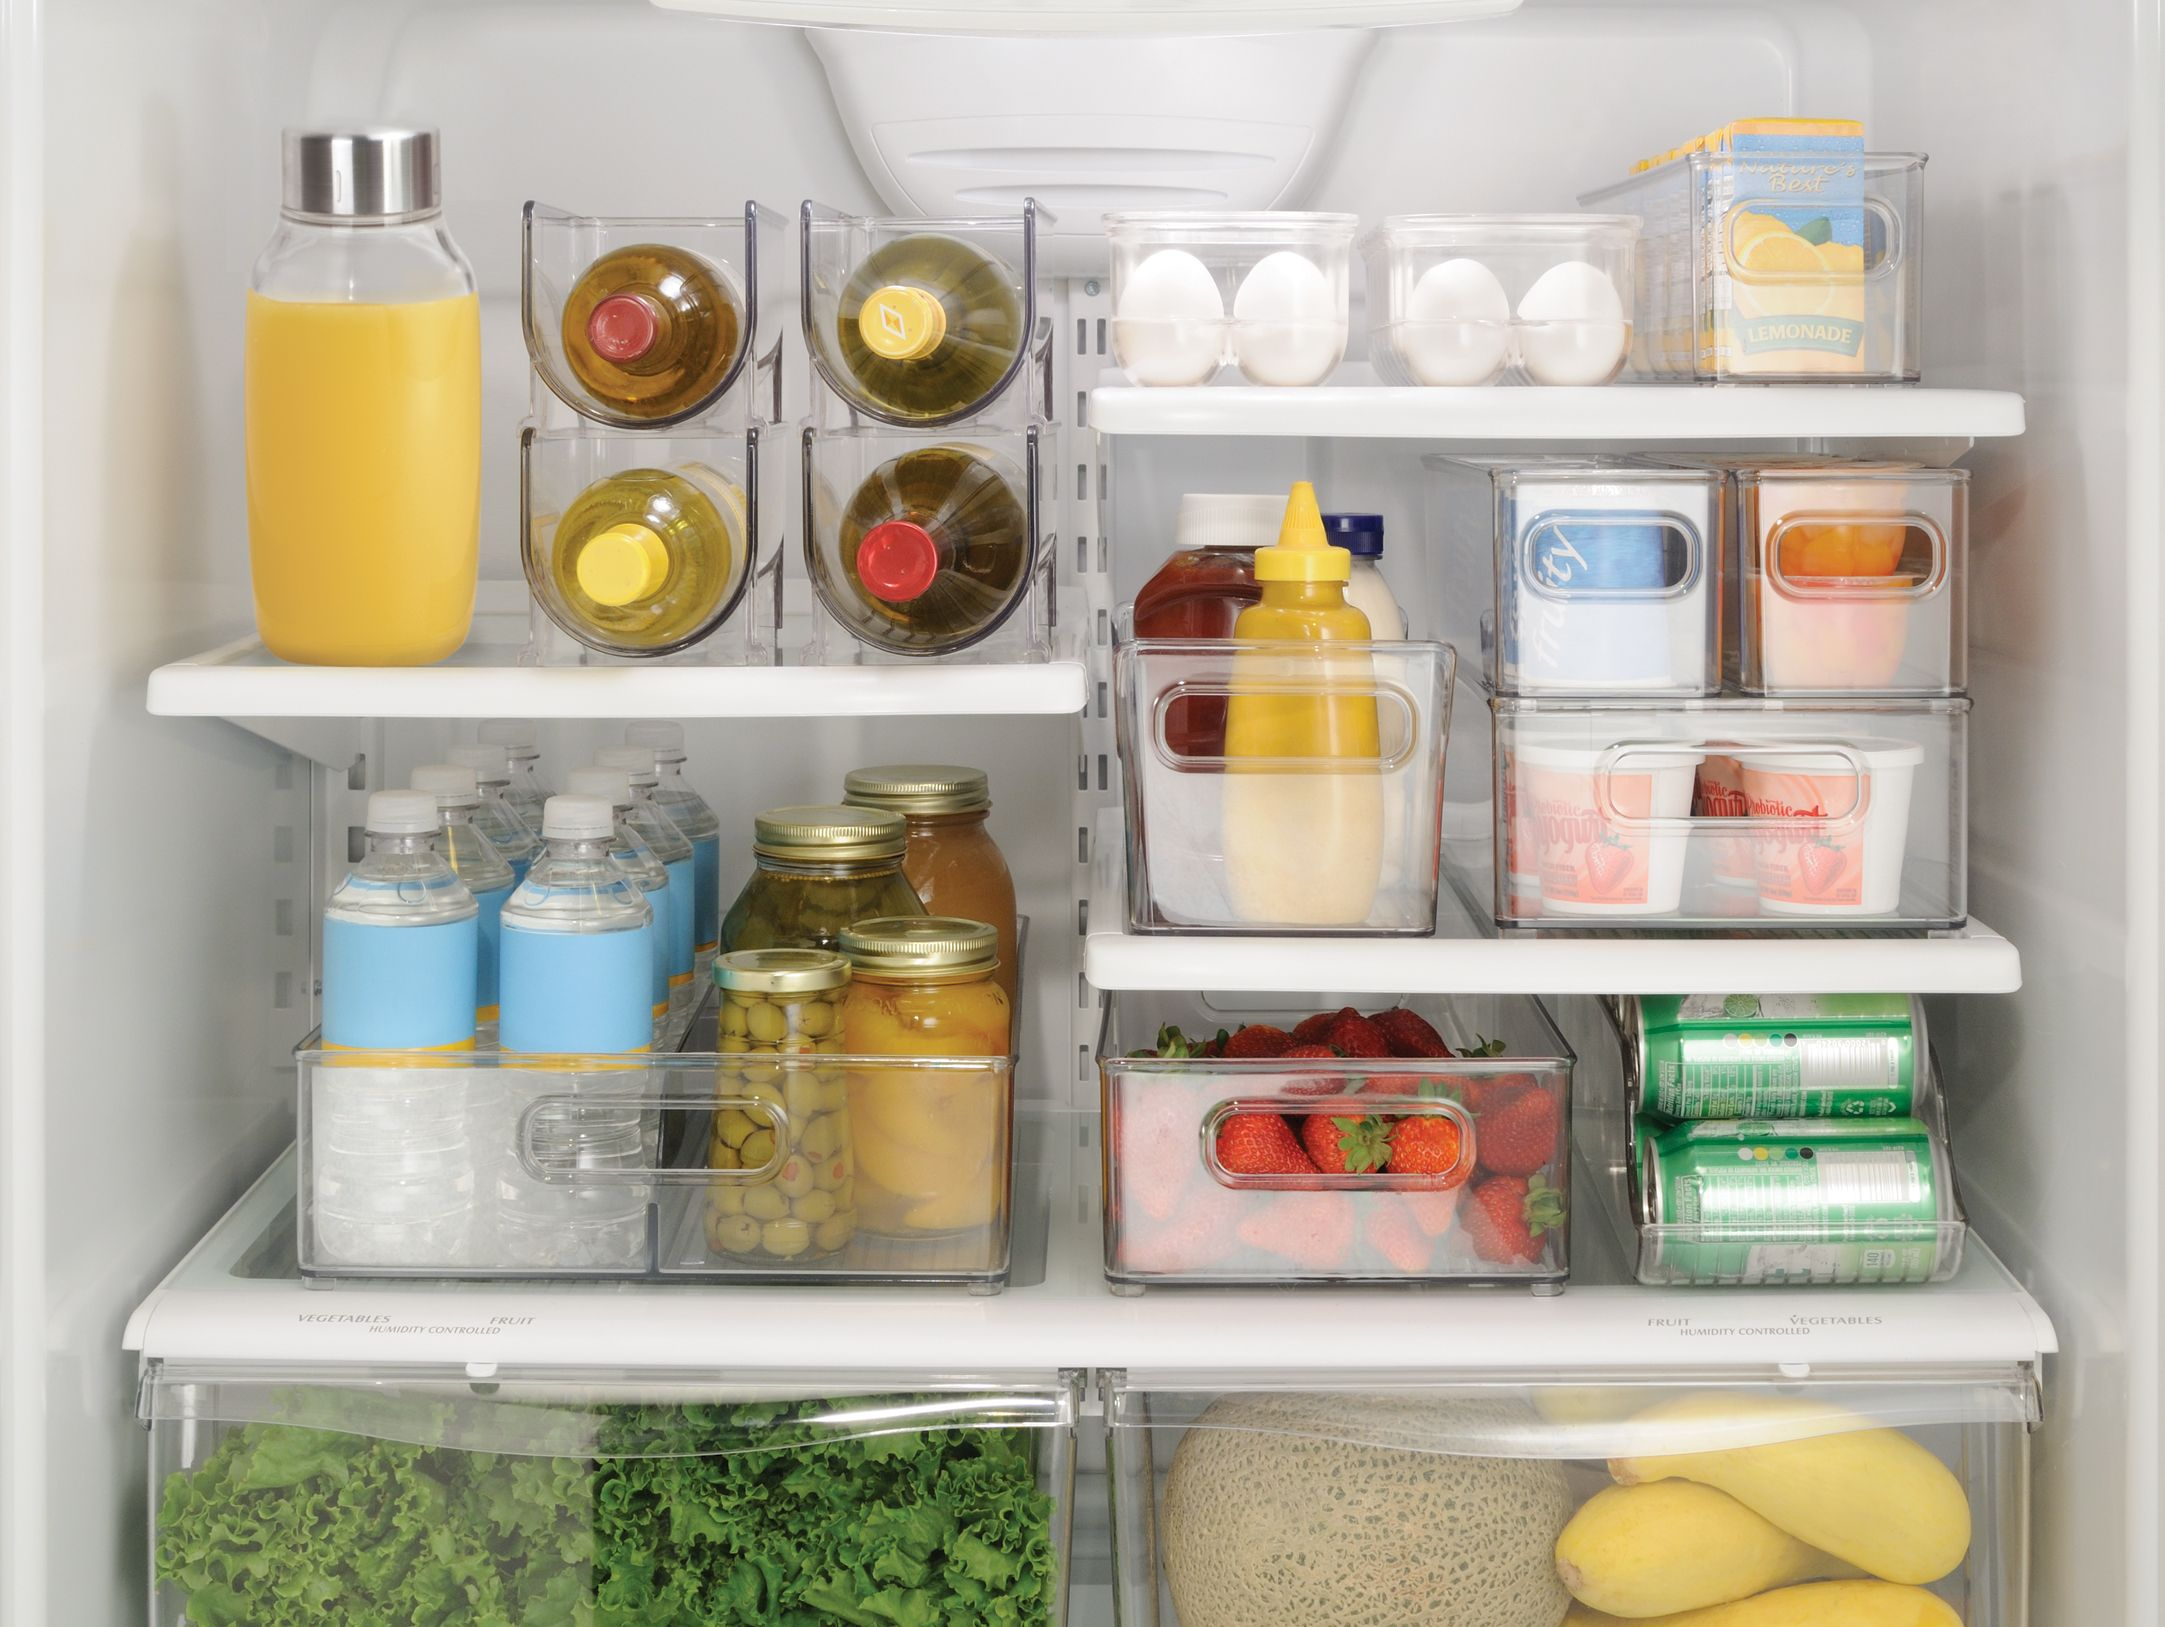 How To Clean Your Fridge in Less than 5 Minutes